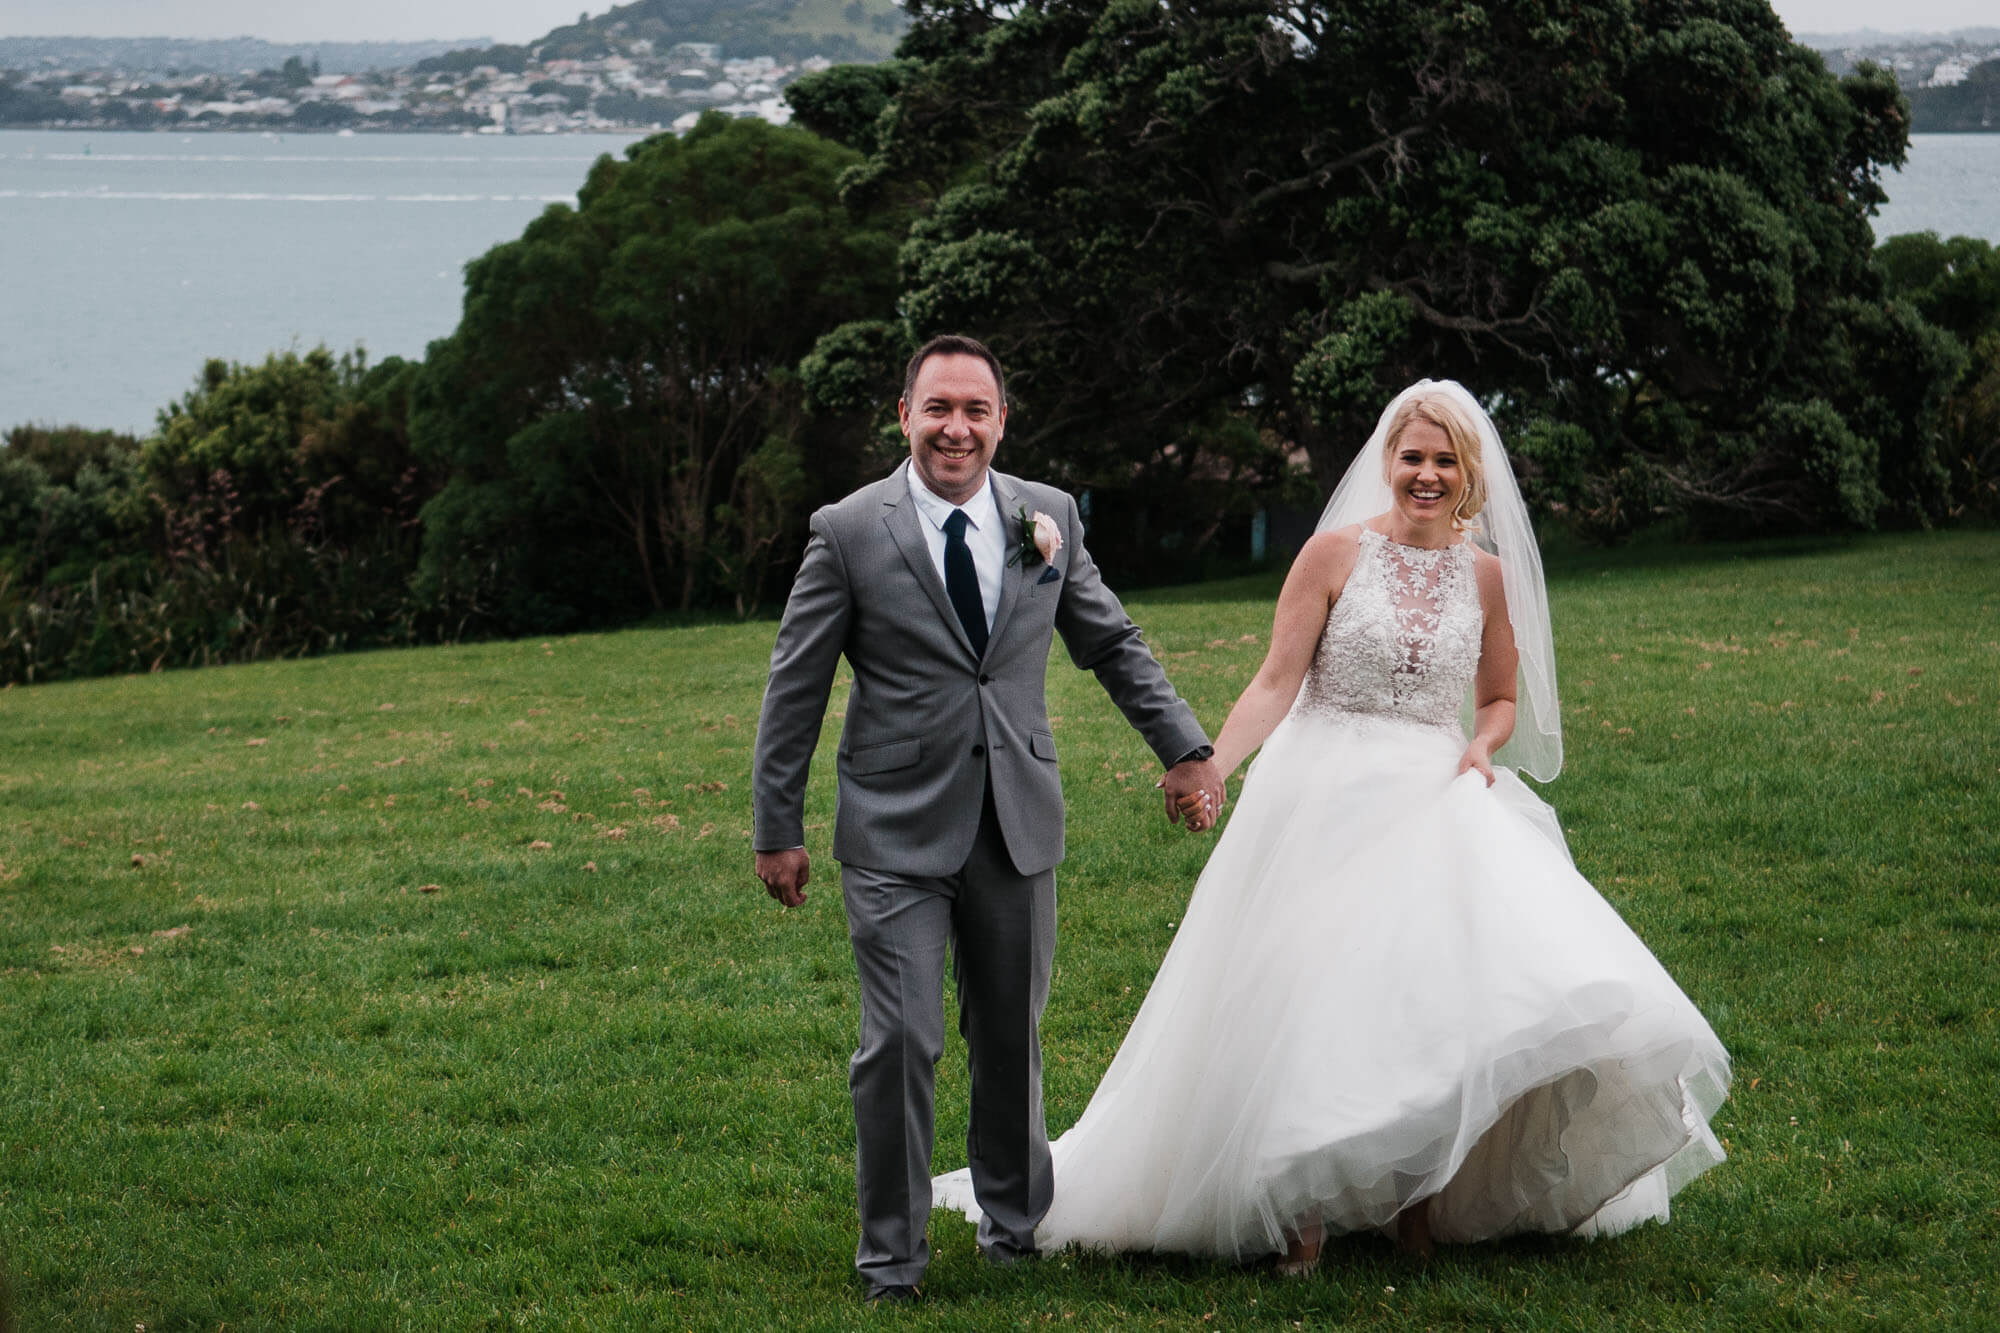 bride-and-groom-walking-together.jpg